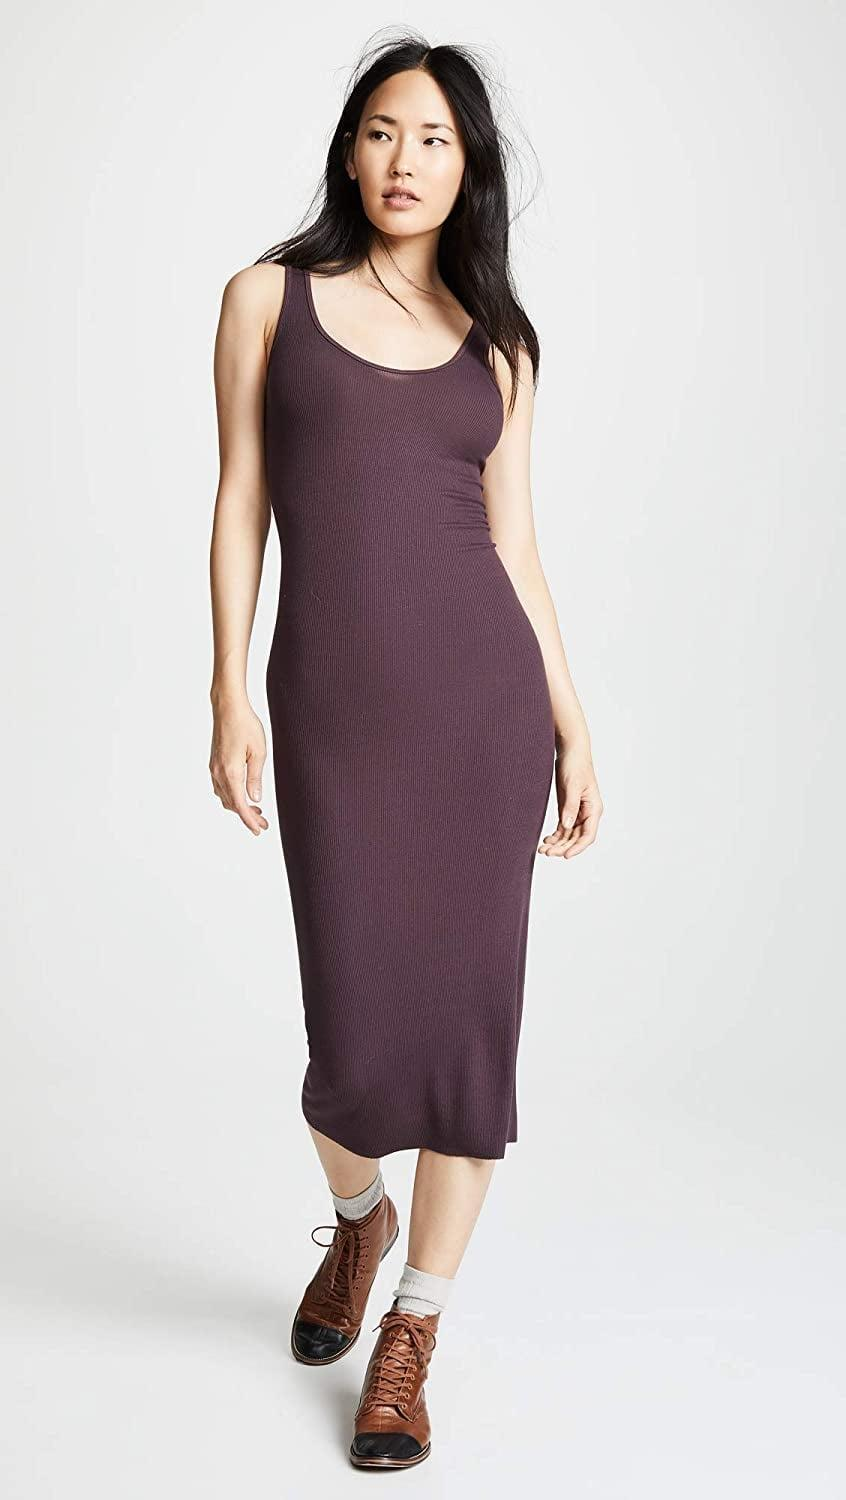 <p>This <span>Enza Costa Stretch Silk Rib Tank Midi Dress</span> ($116) was designed to be lived in, thanks to its stretchy fabric yet put-together appearance. The color makes it super wearable and easy to style.</p>